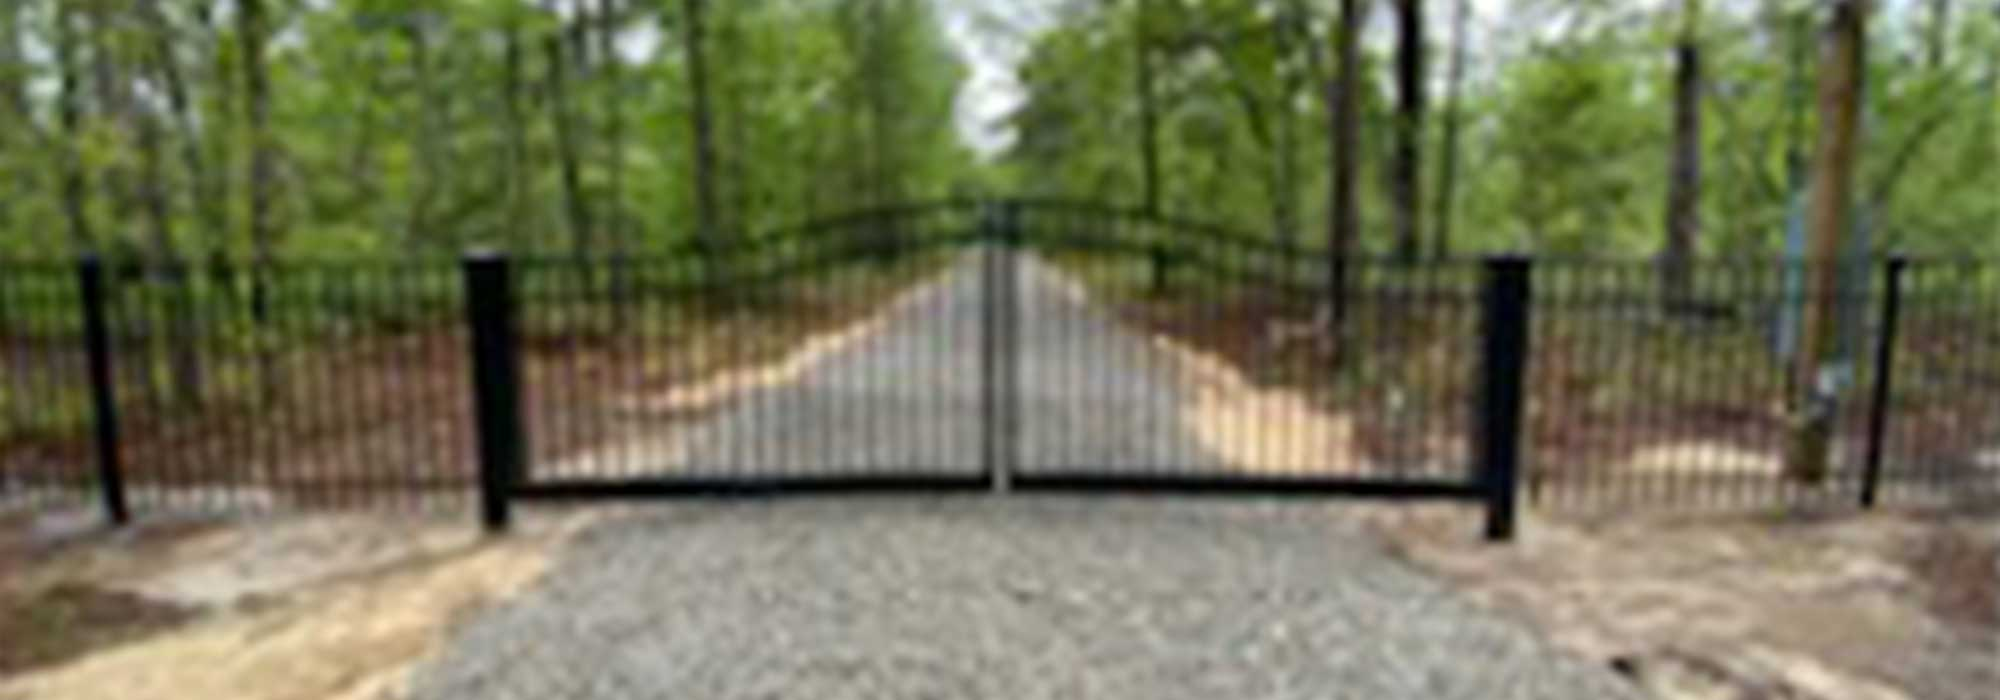 Metal Gate Construction